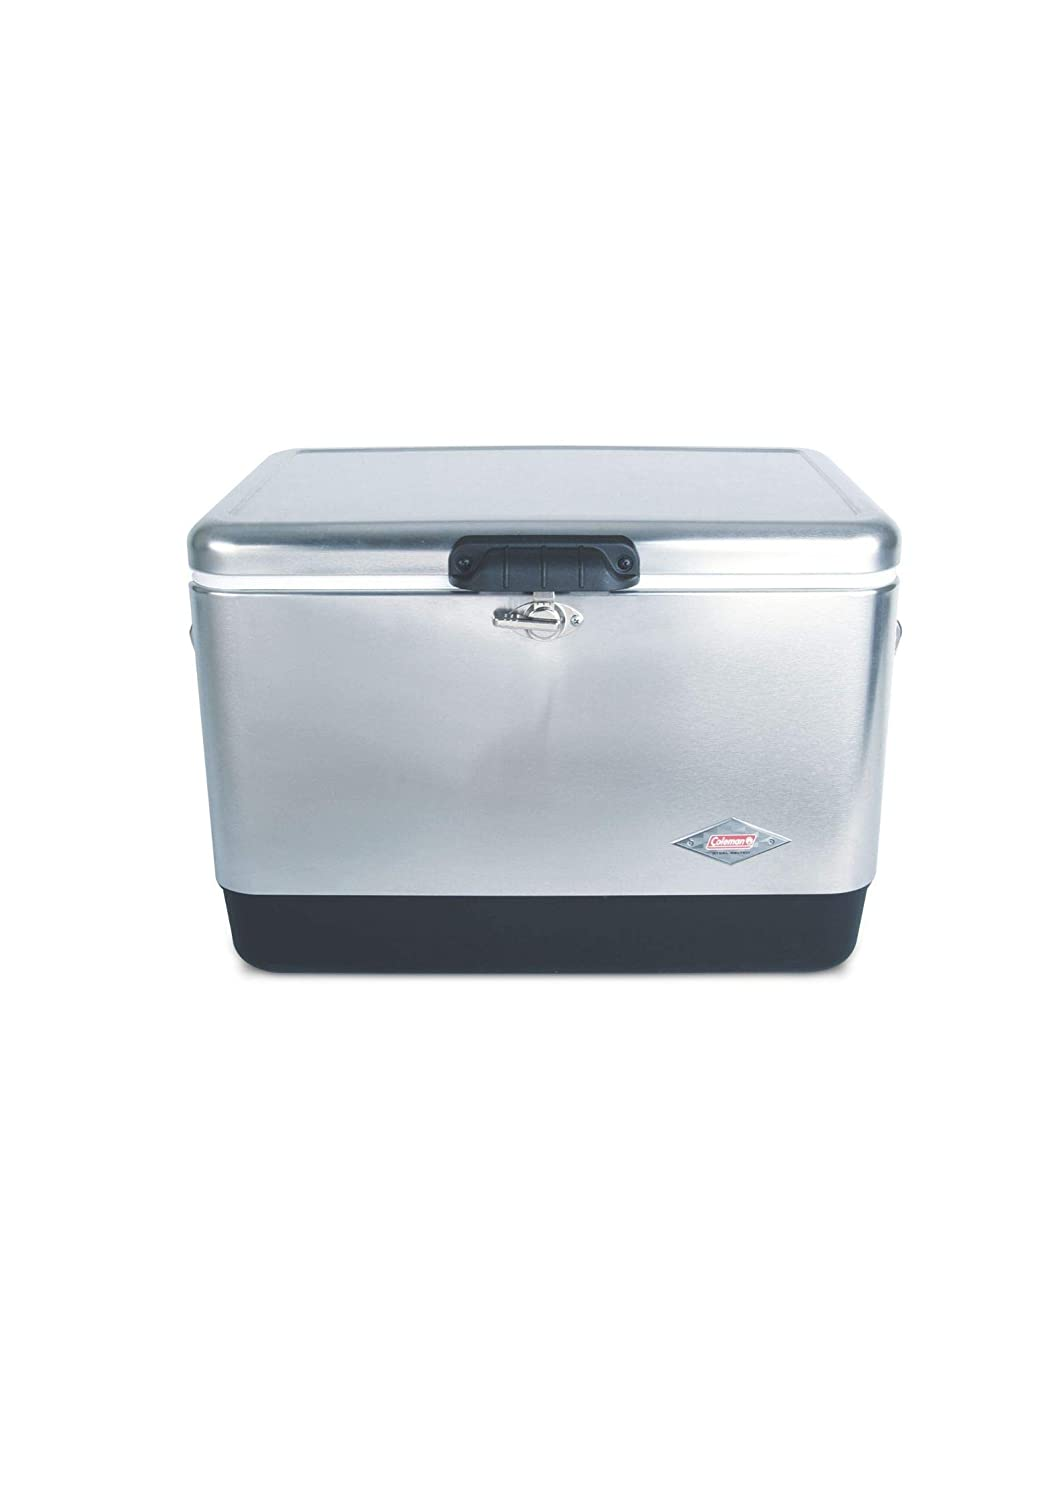 Steel-belted portable cooler 54qt